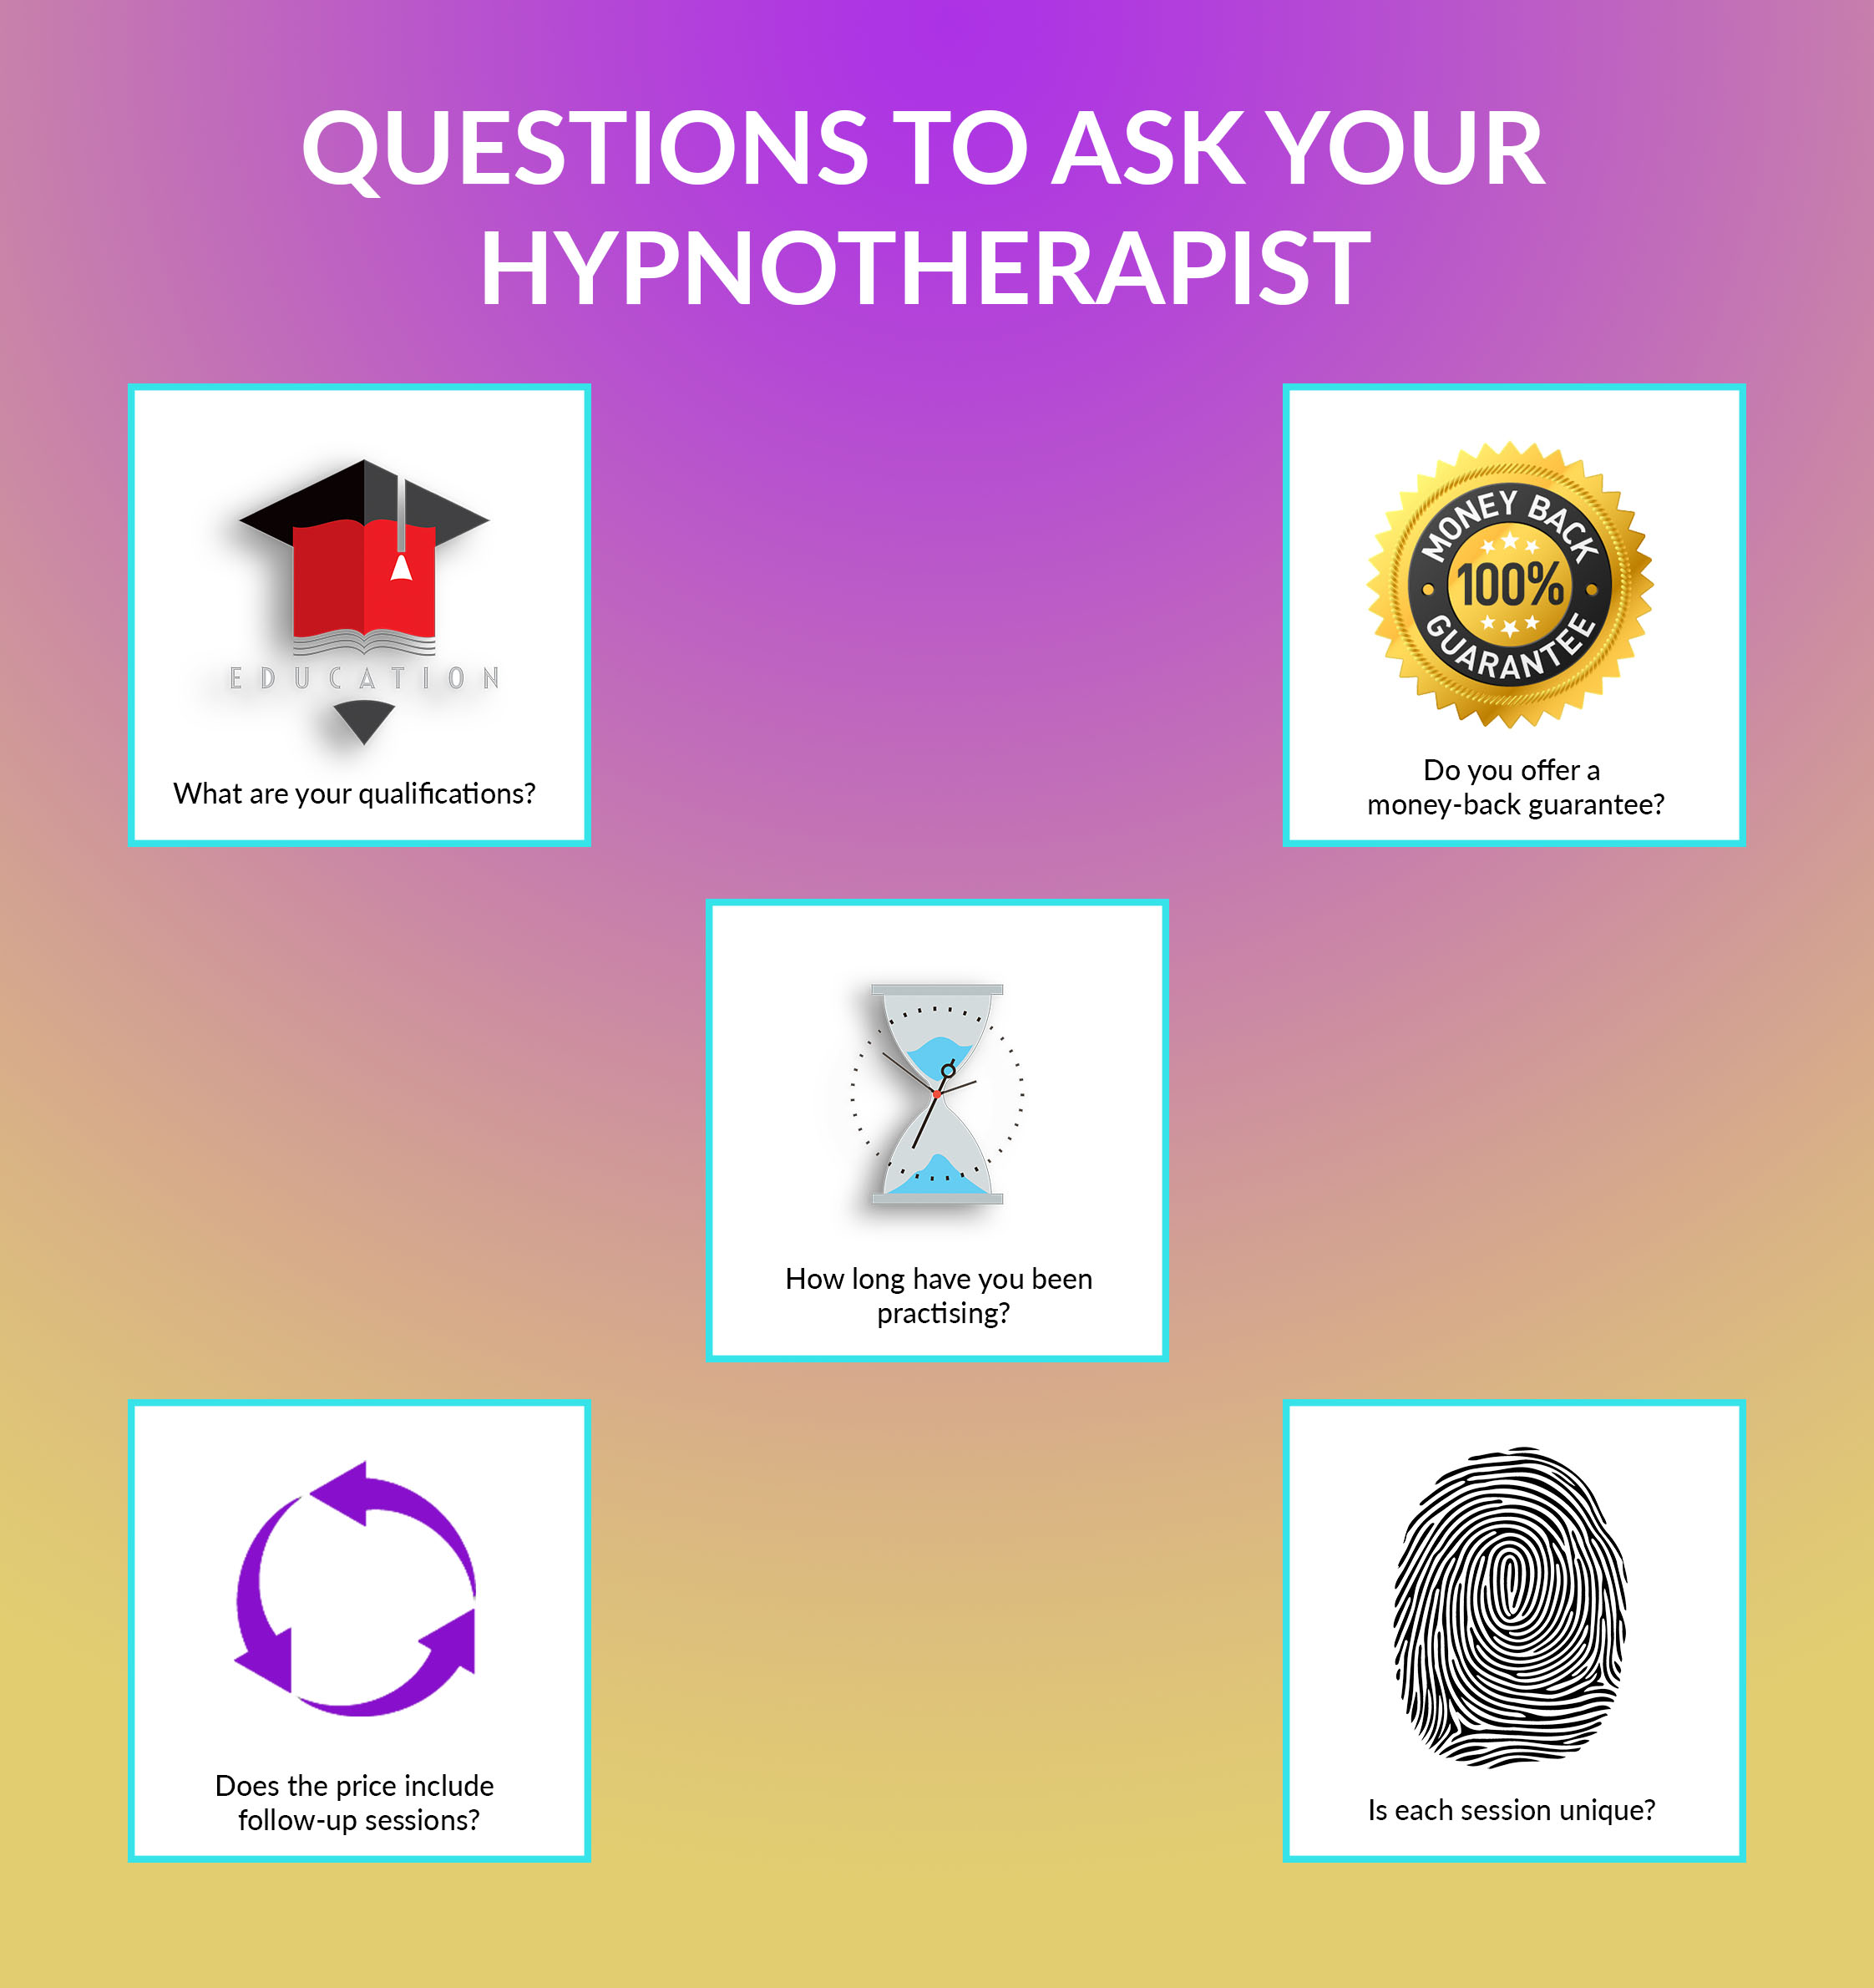 Things you should ask your hypnotherapist